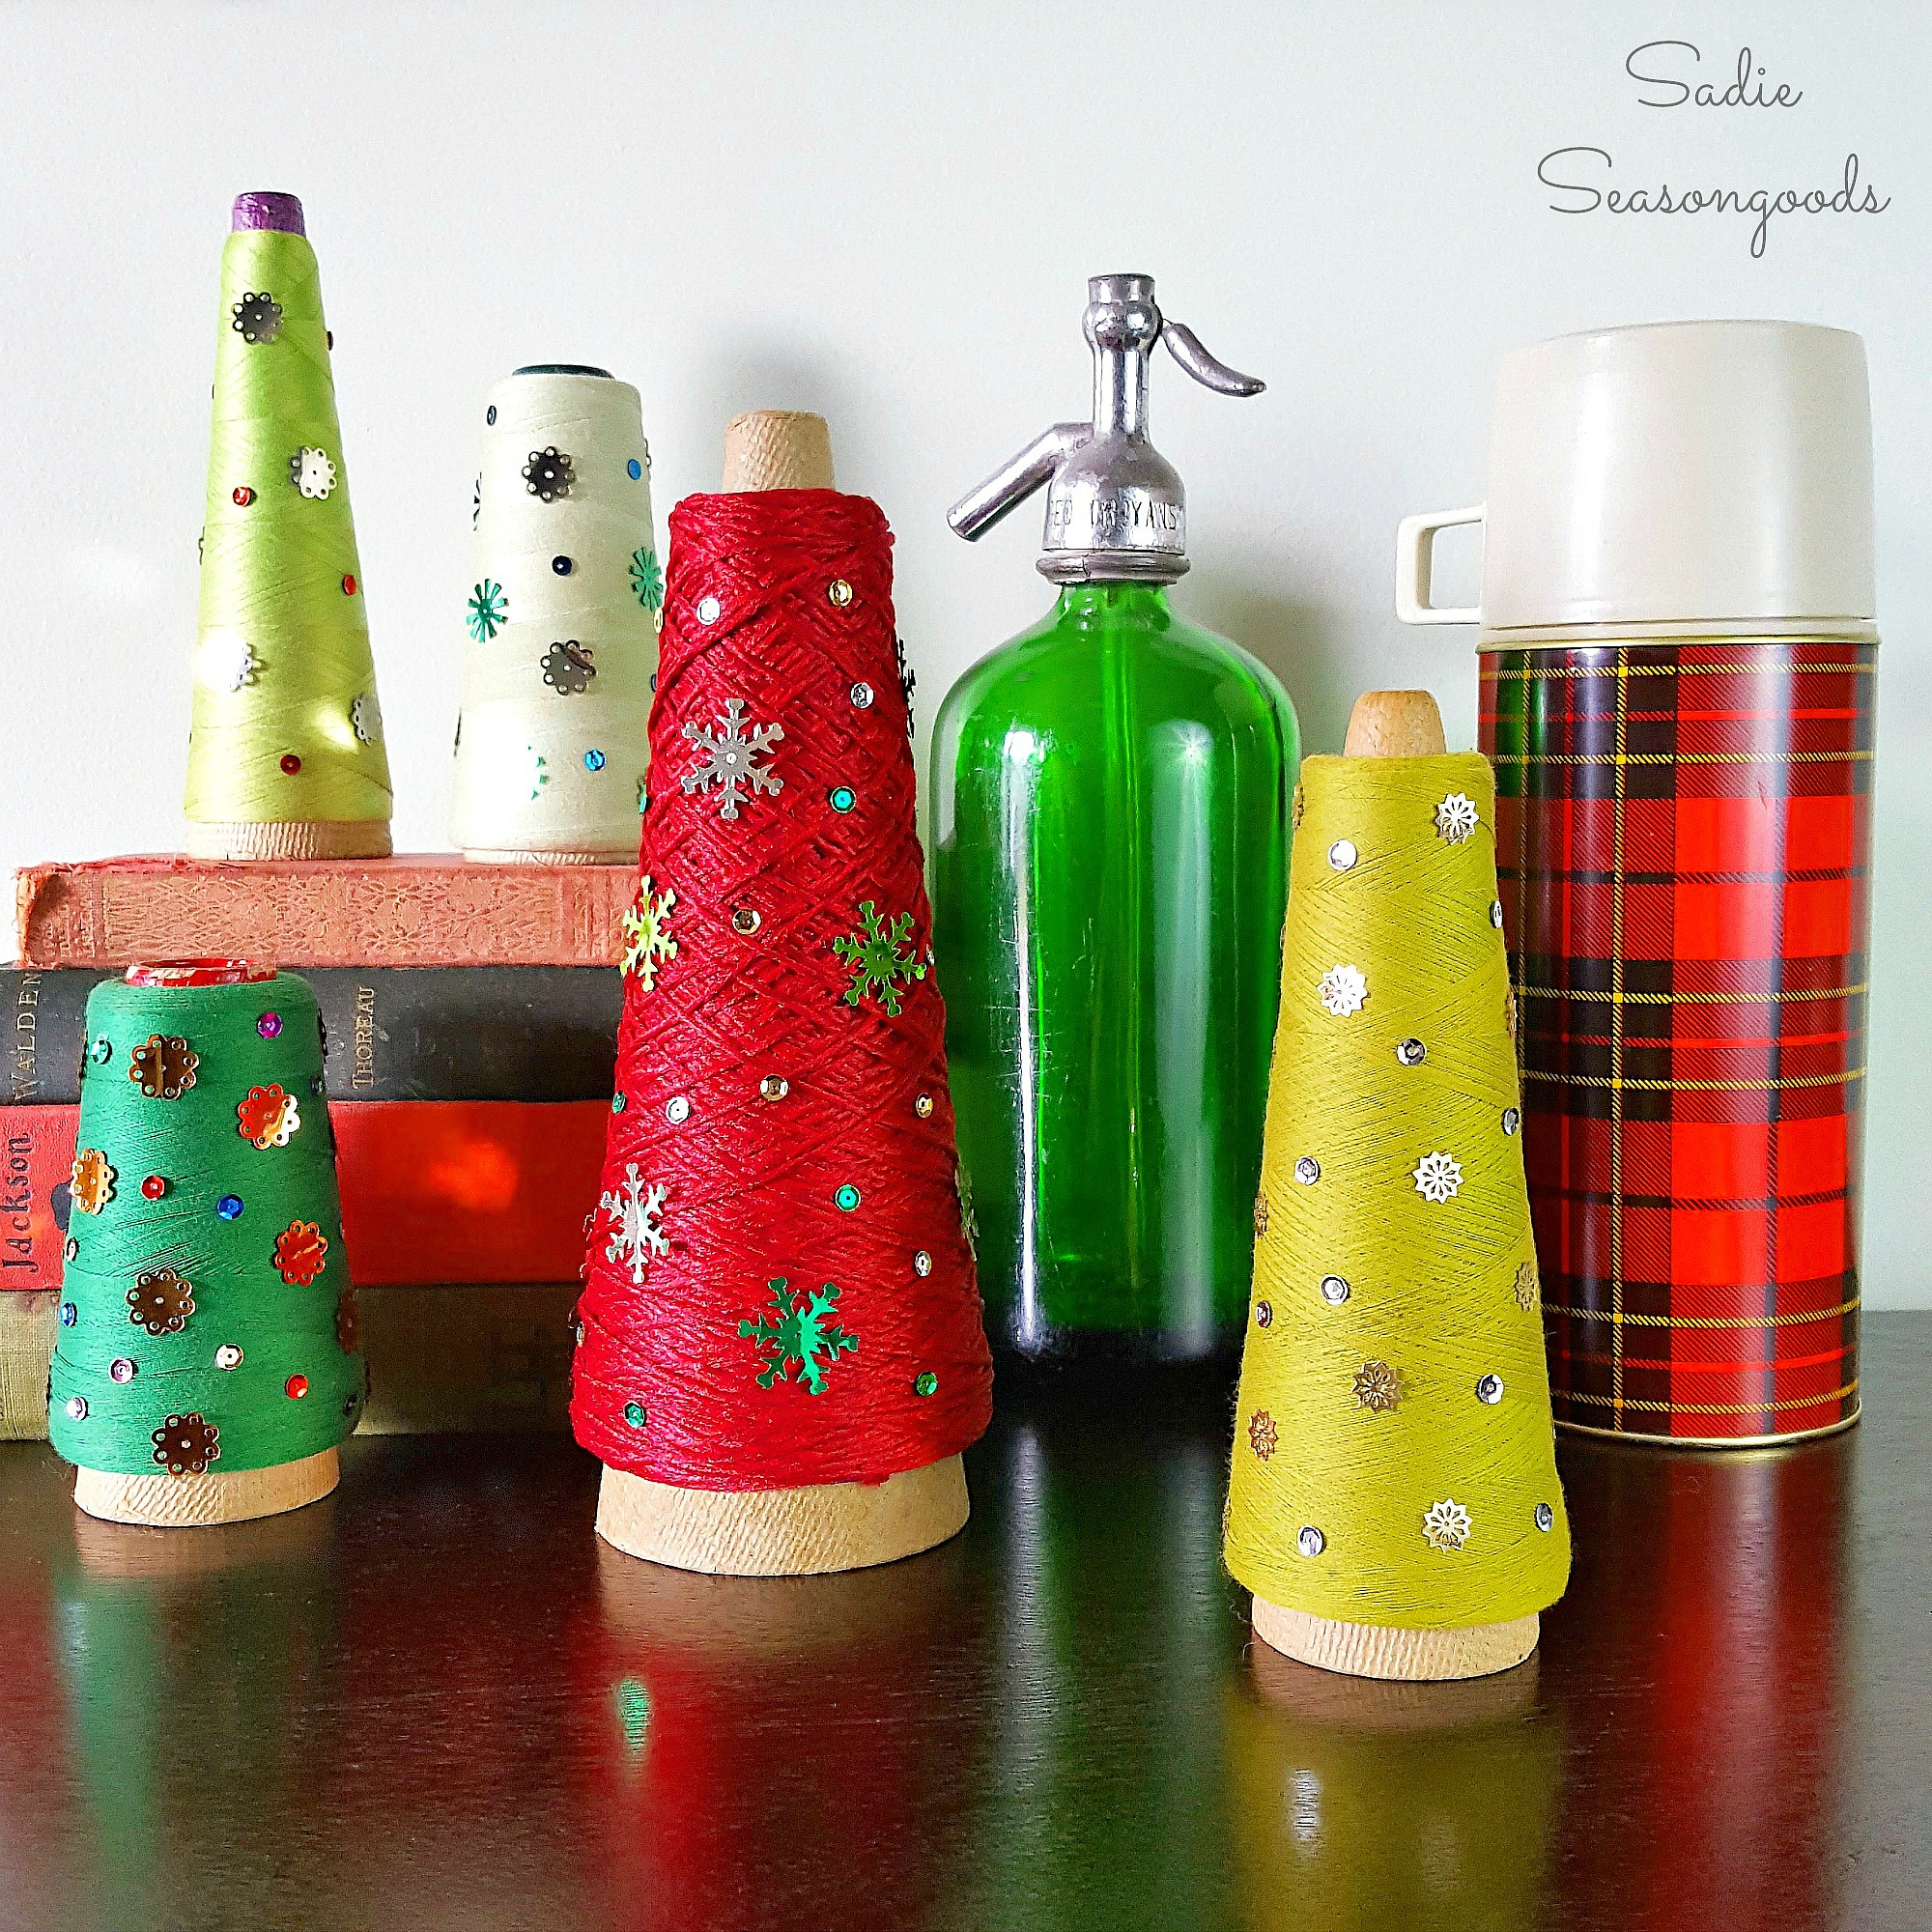 waste-not-wednesday-week-27-vintage_serger_cone_thread_repurposed_and_upcycled_as_diy_christmas_trees_with_vintage_sequins_holiday_decor_by_sadie_seasongoods